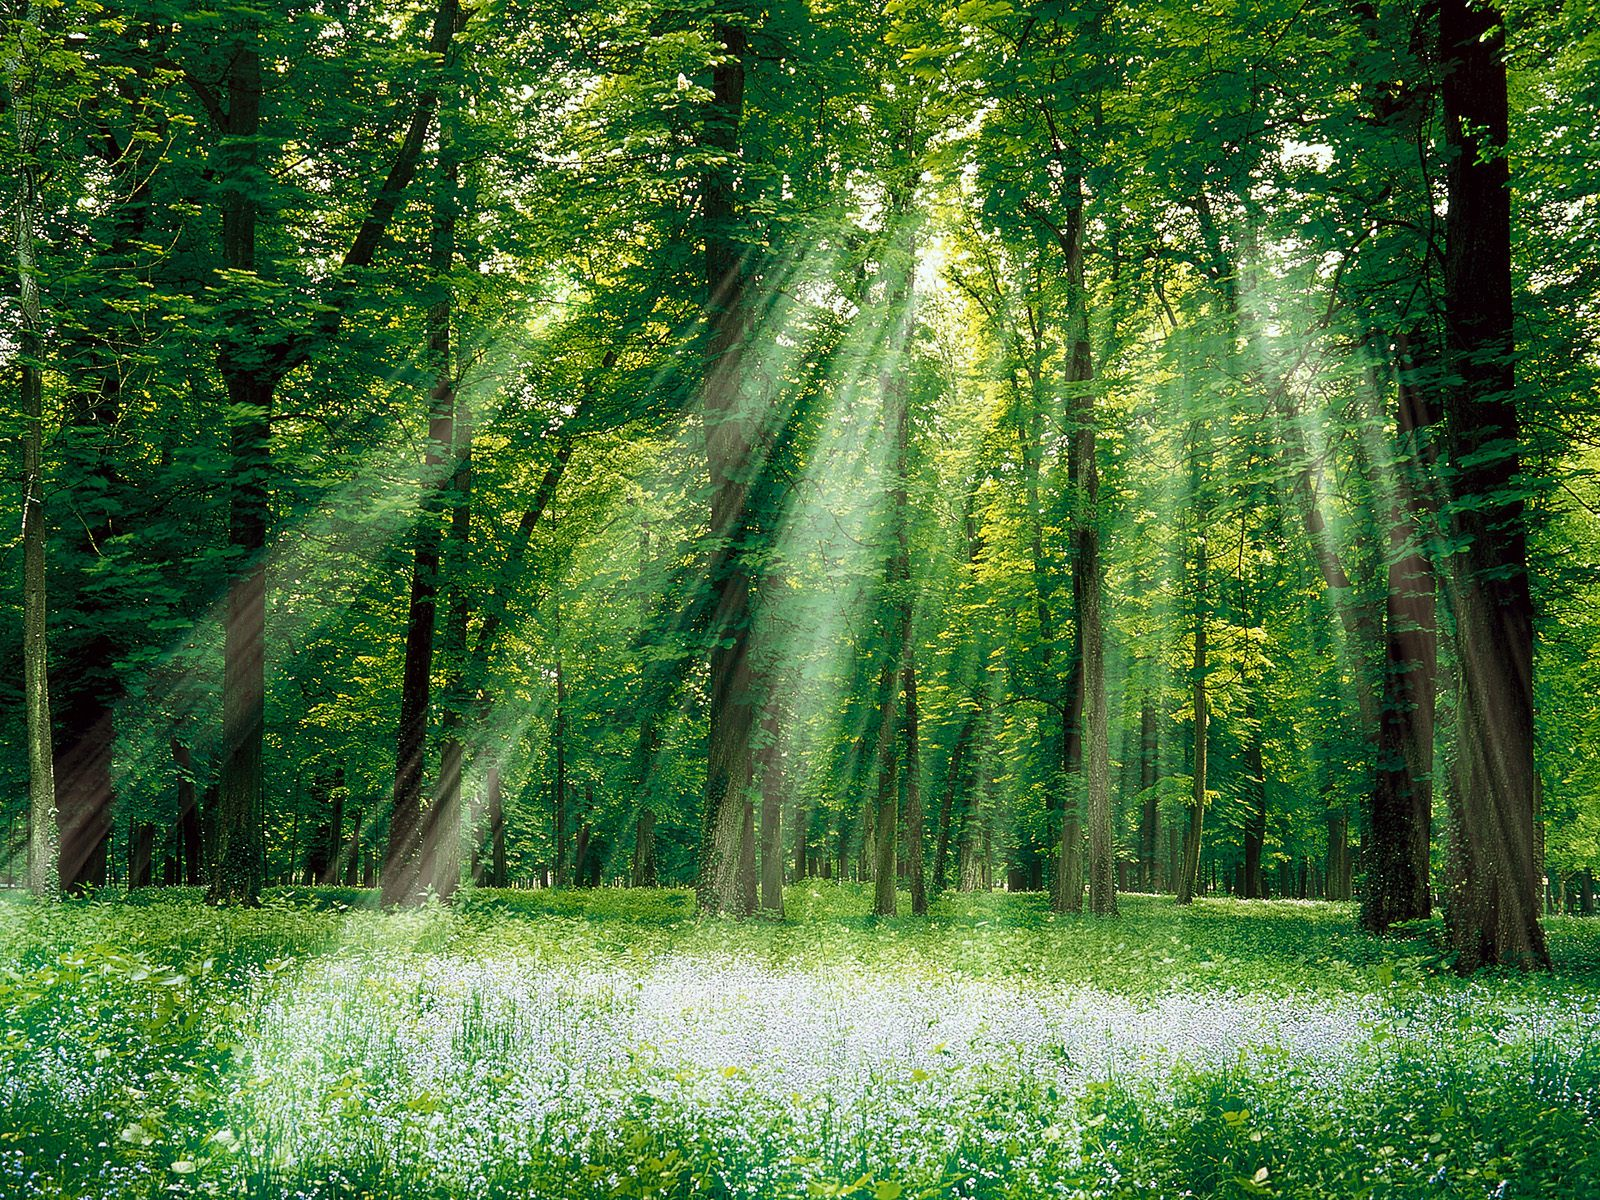 wonder magical forest images picture download wallpaper